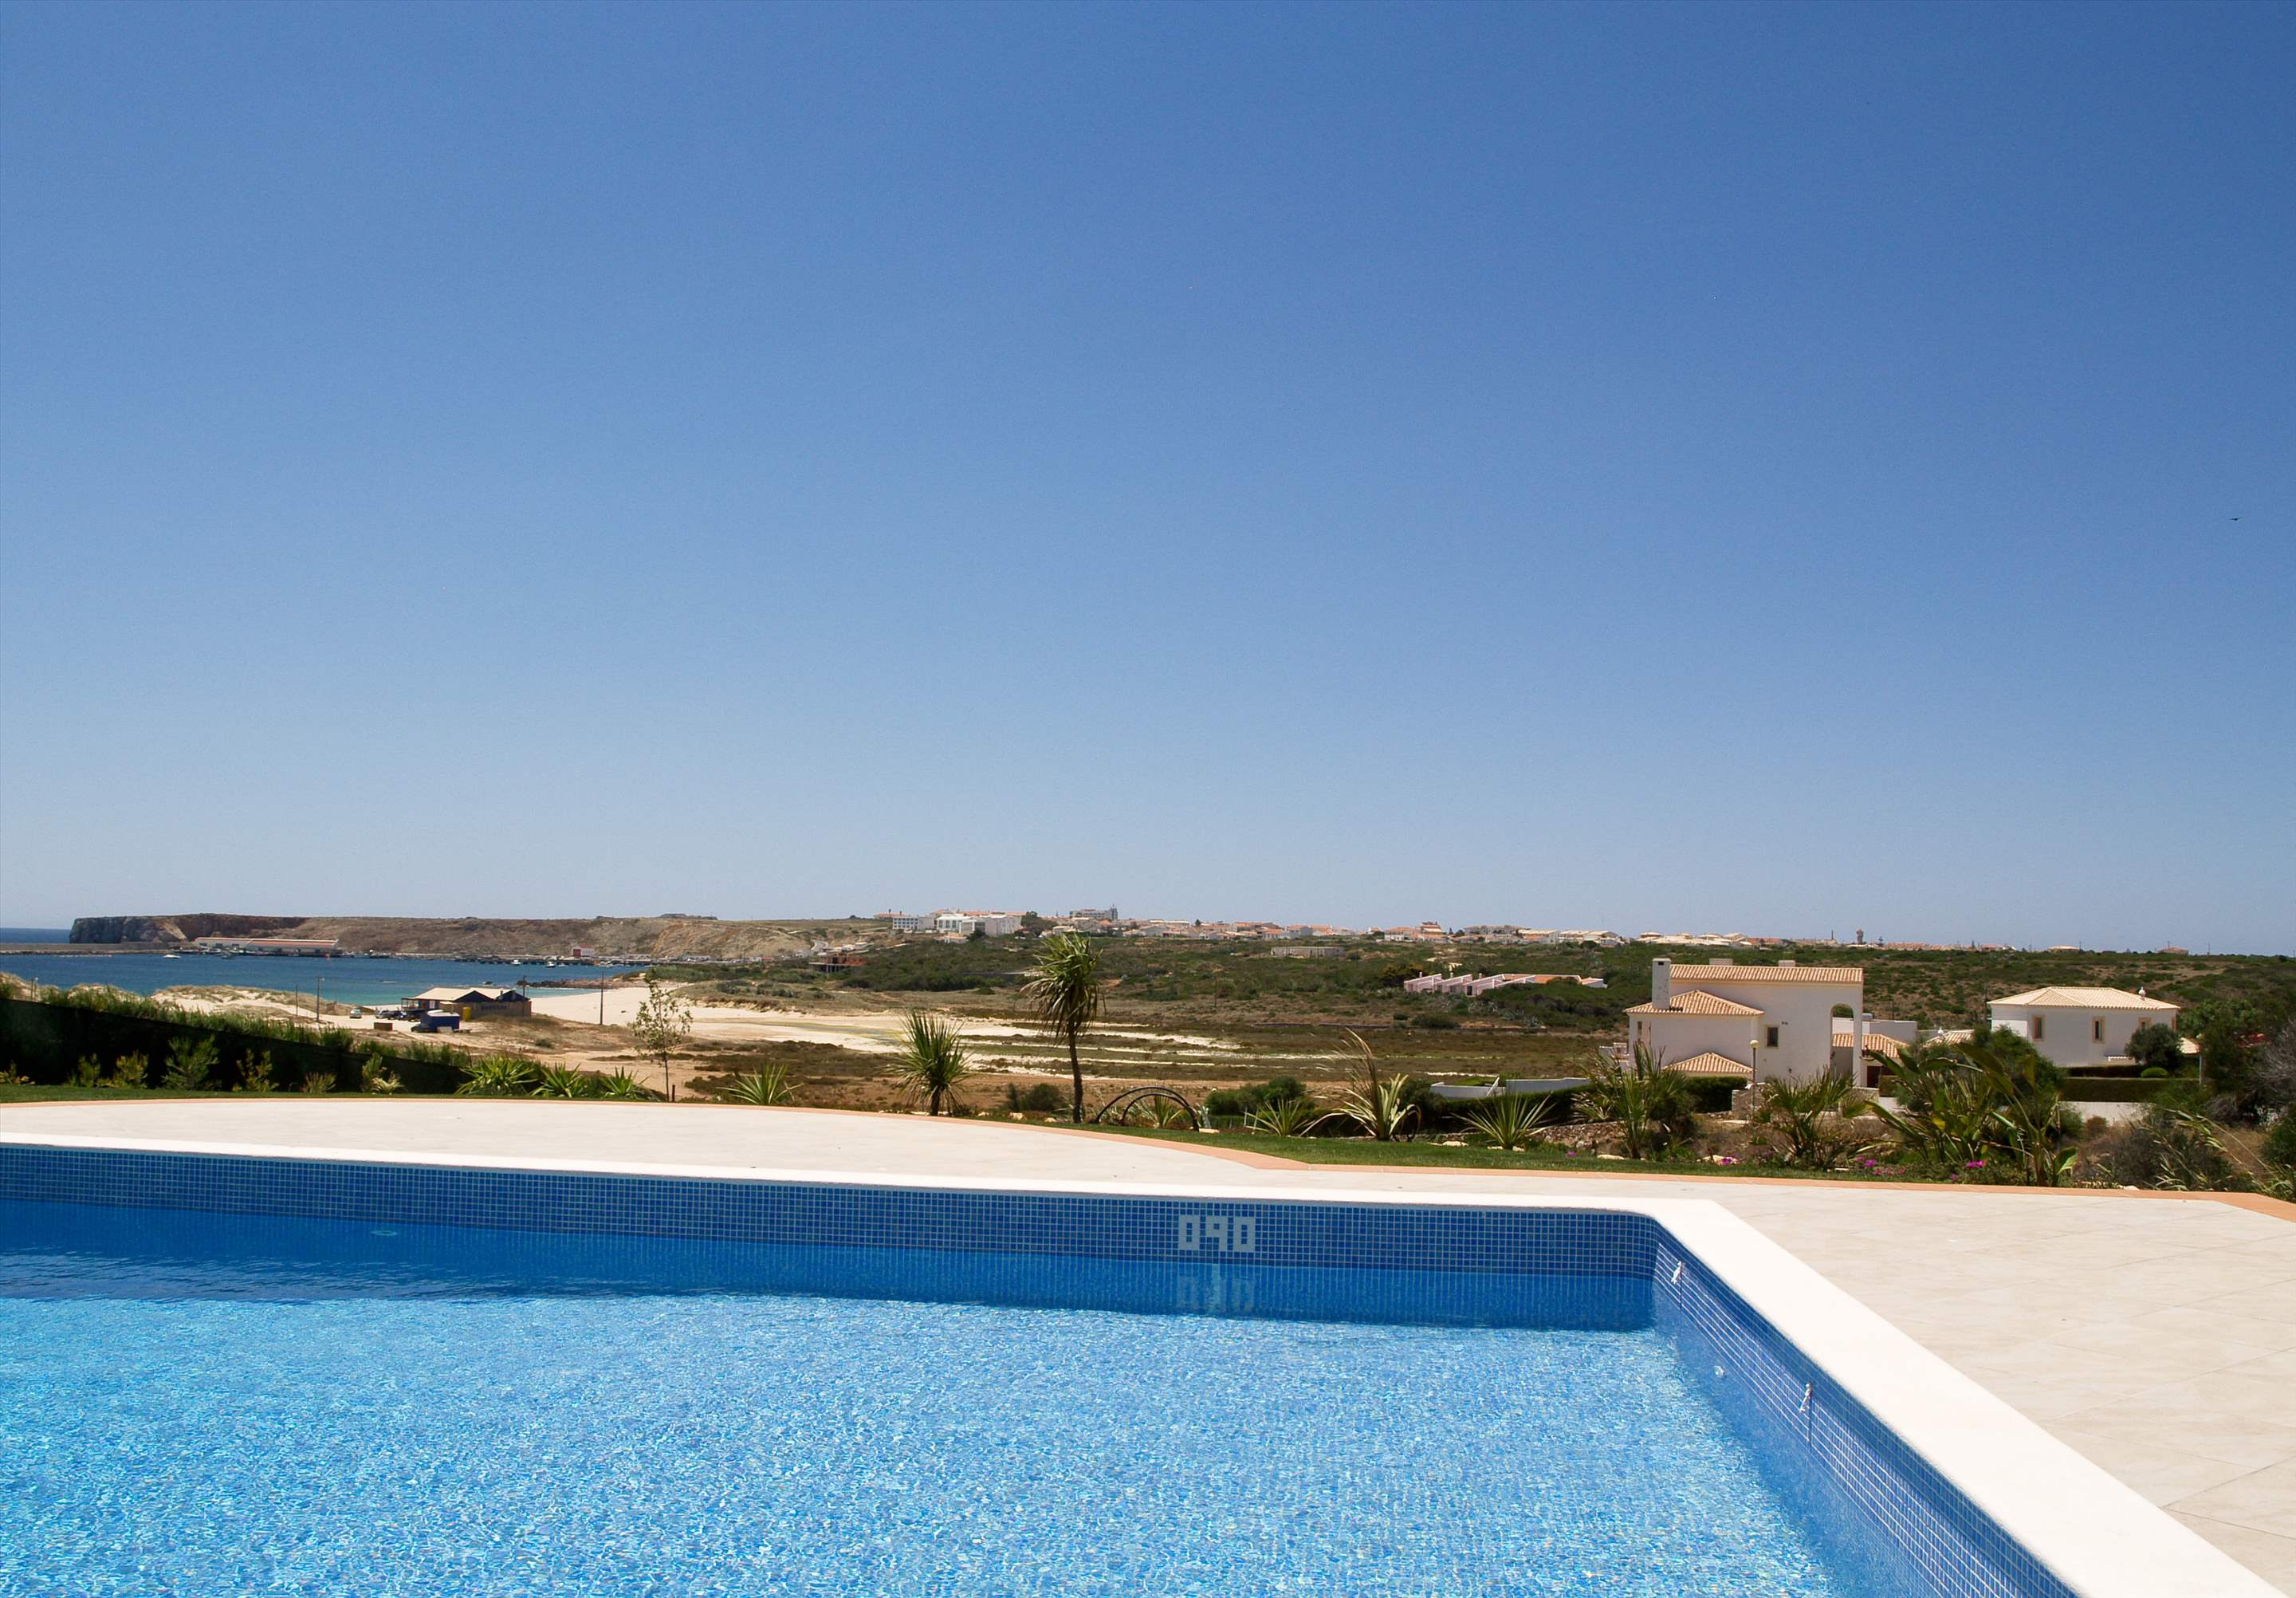 Martinhal Luxury Villa No.44, 3 bedroom villa in Martinhal Sagres, Algarve Photo #7